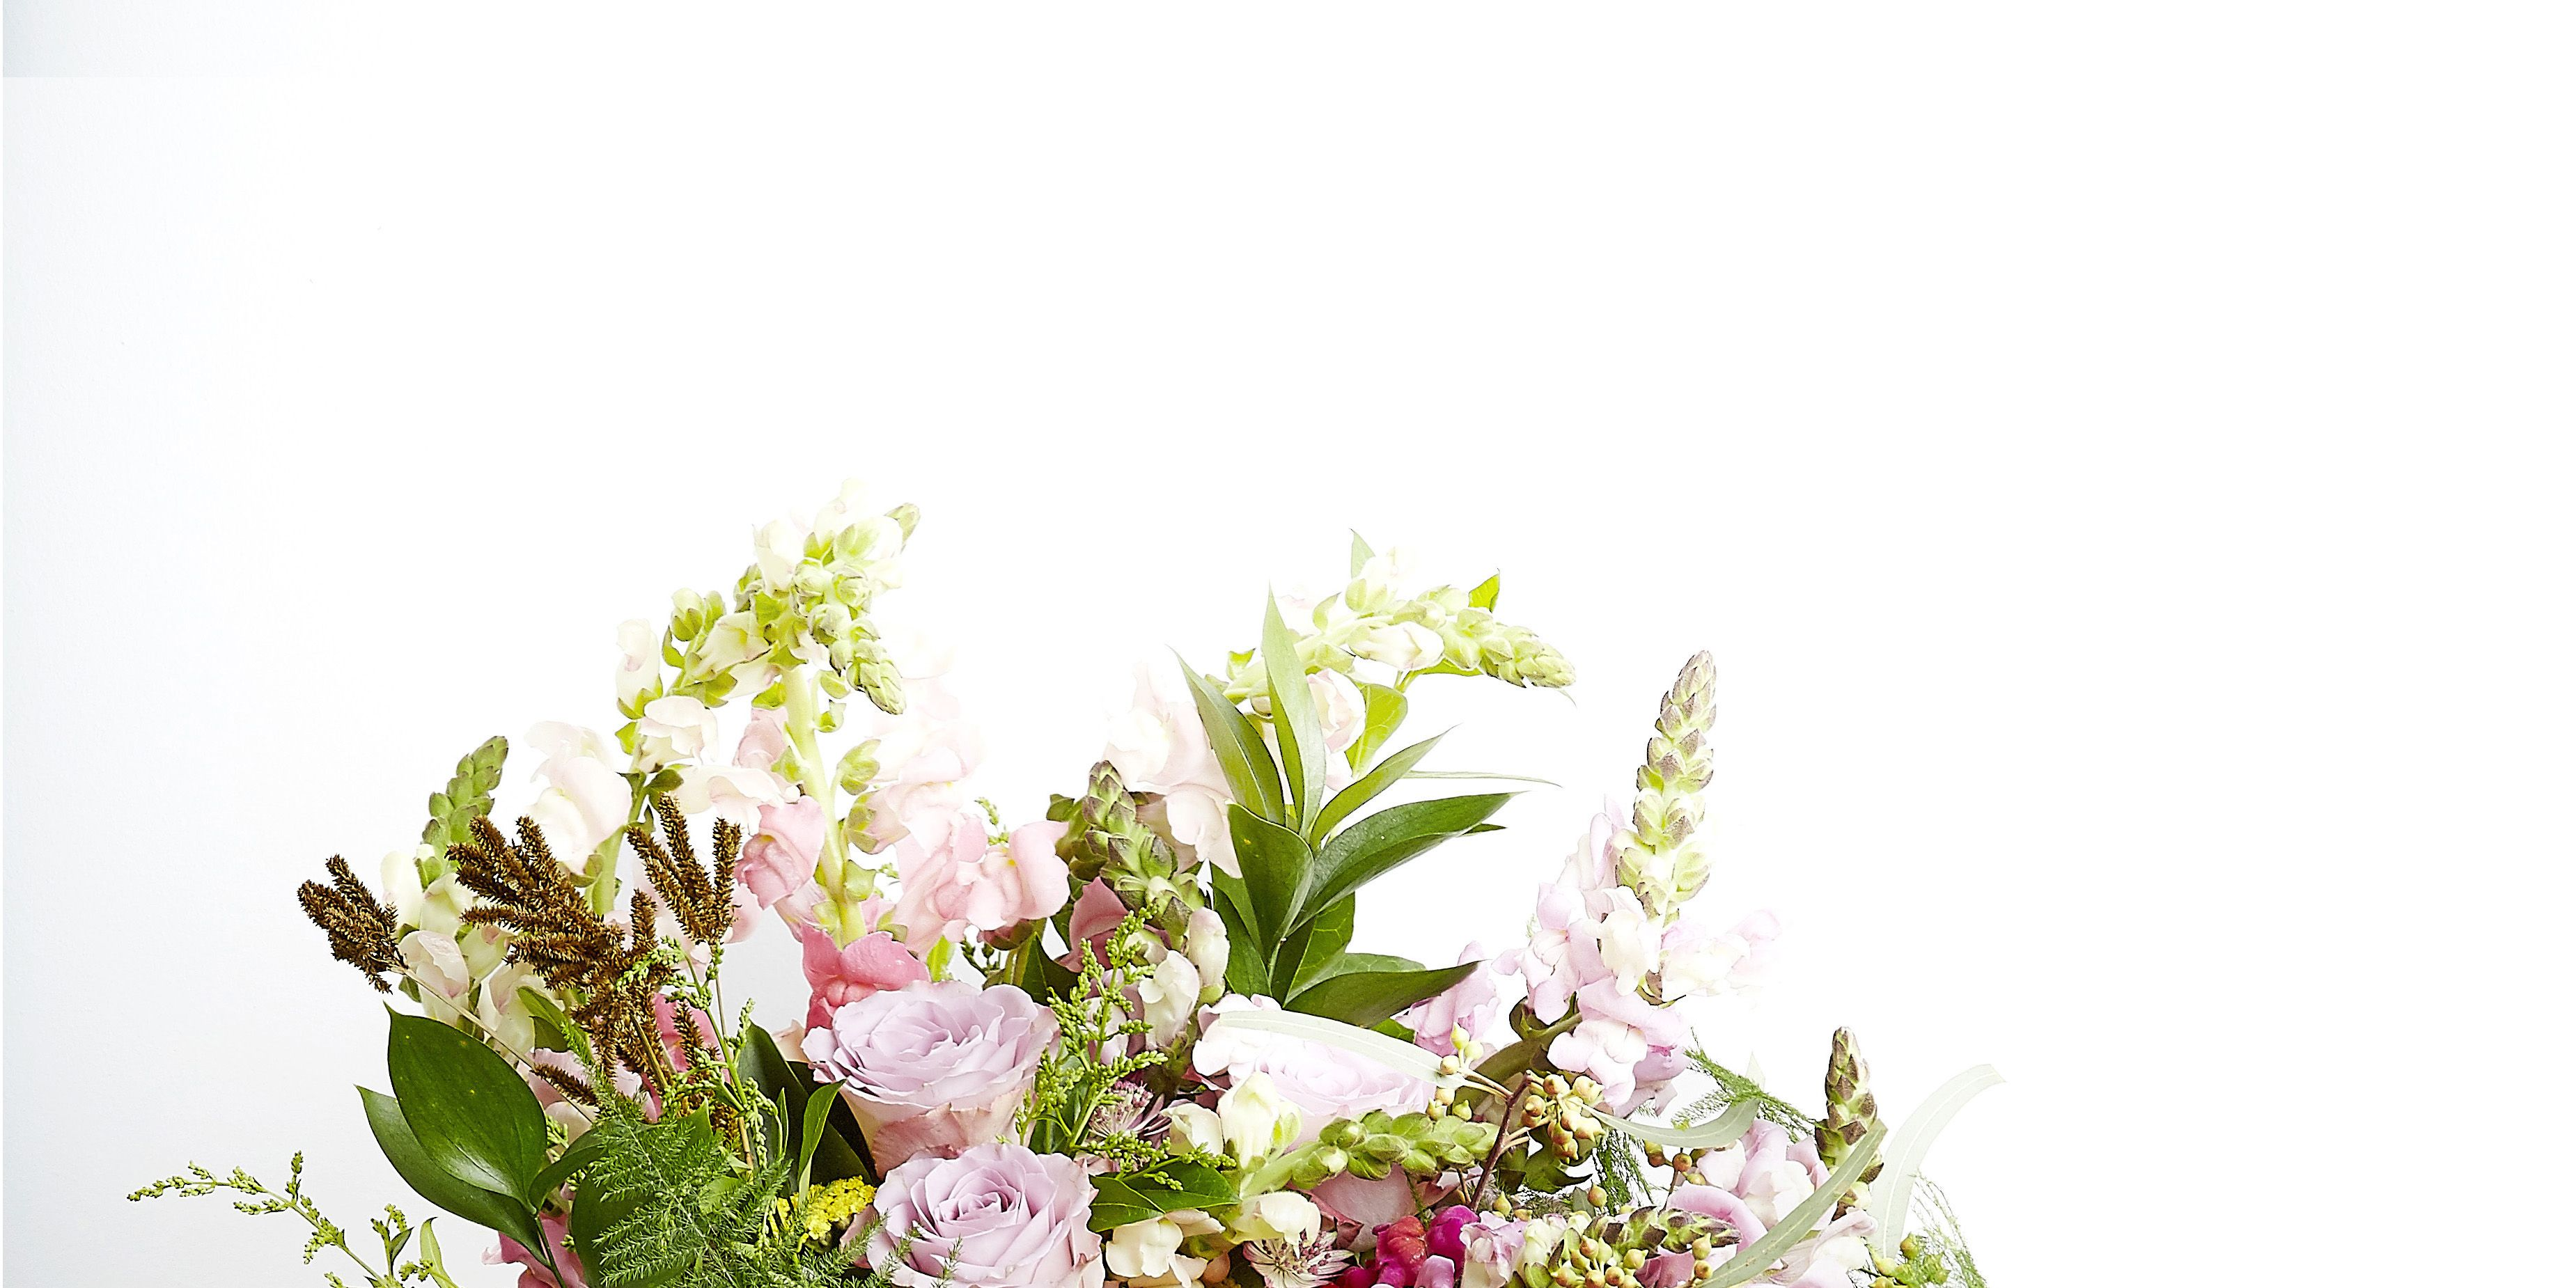 Hayfever-friendly flower bouquet - Grace & Thorn - Funnyhowflowersdothat.co.uk- Flower Council of Holland